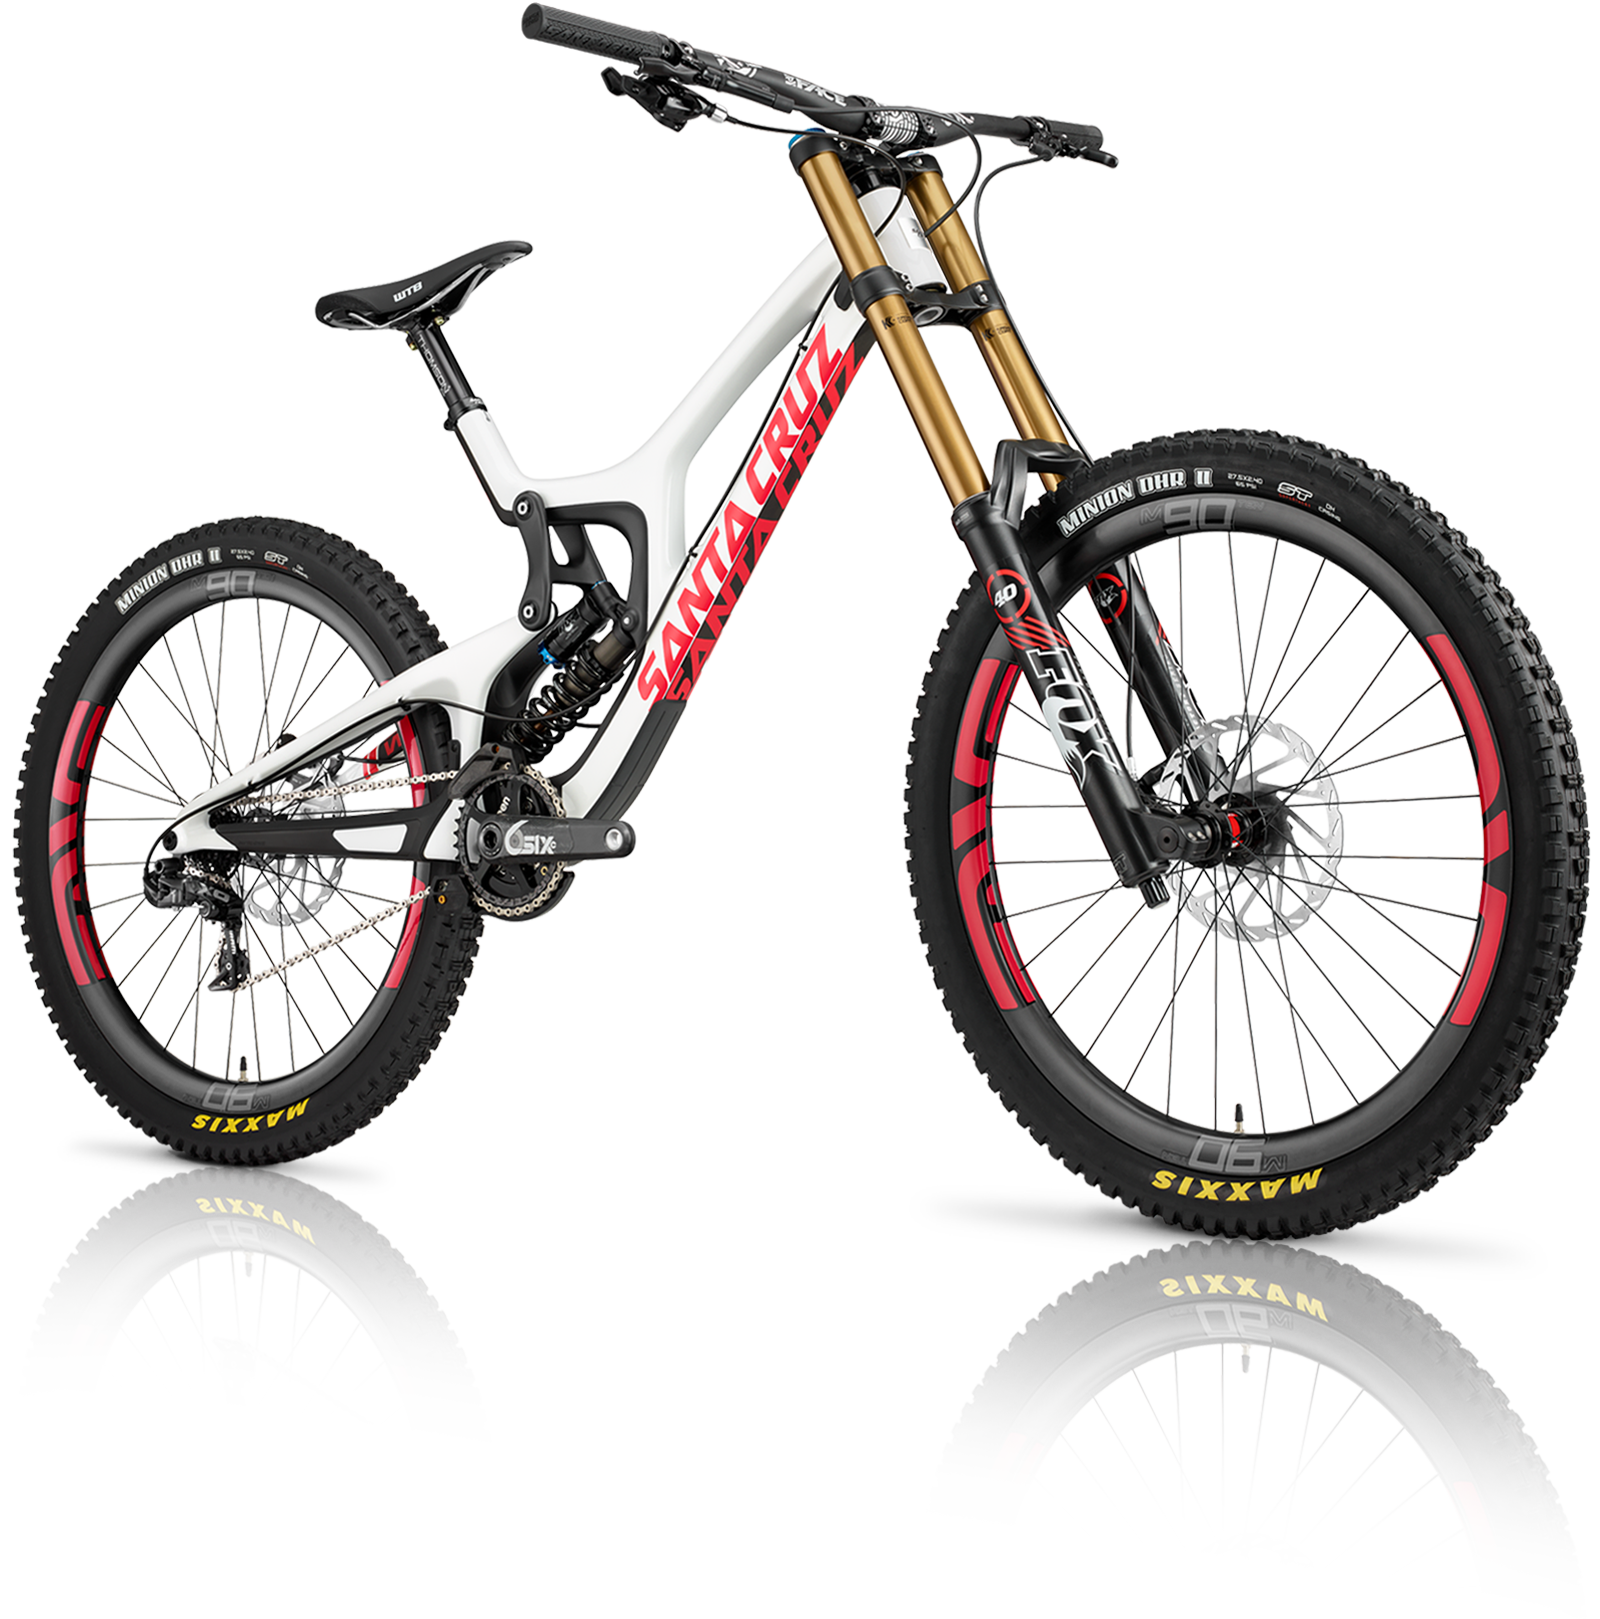 News Santa Cruz Releases All New V10 Carbon Downhill Bike Singletracks Mountain Bike News